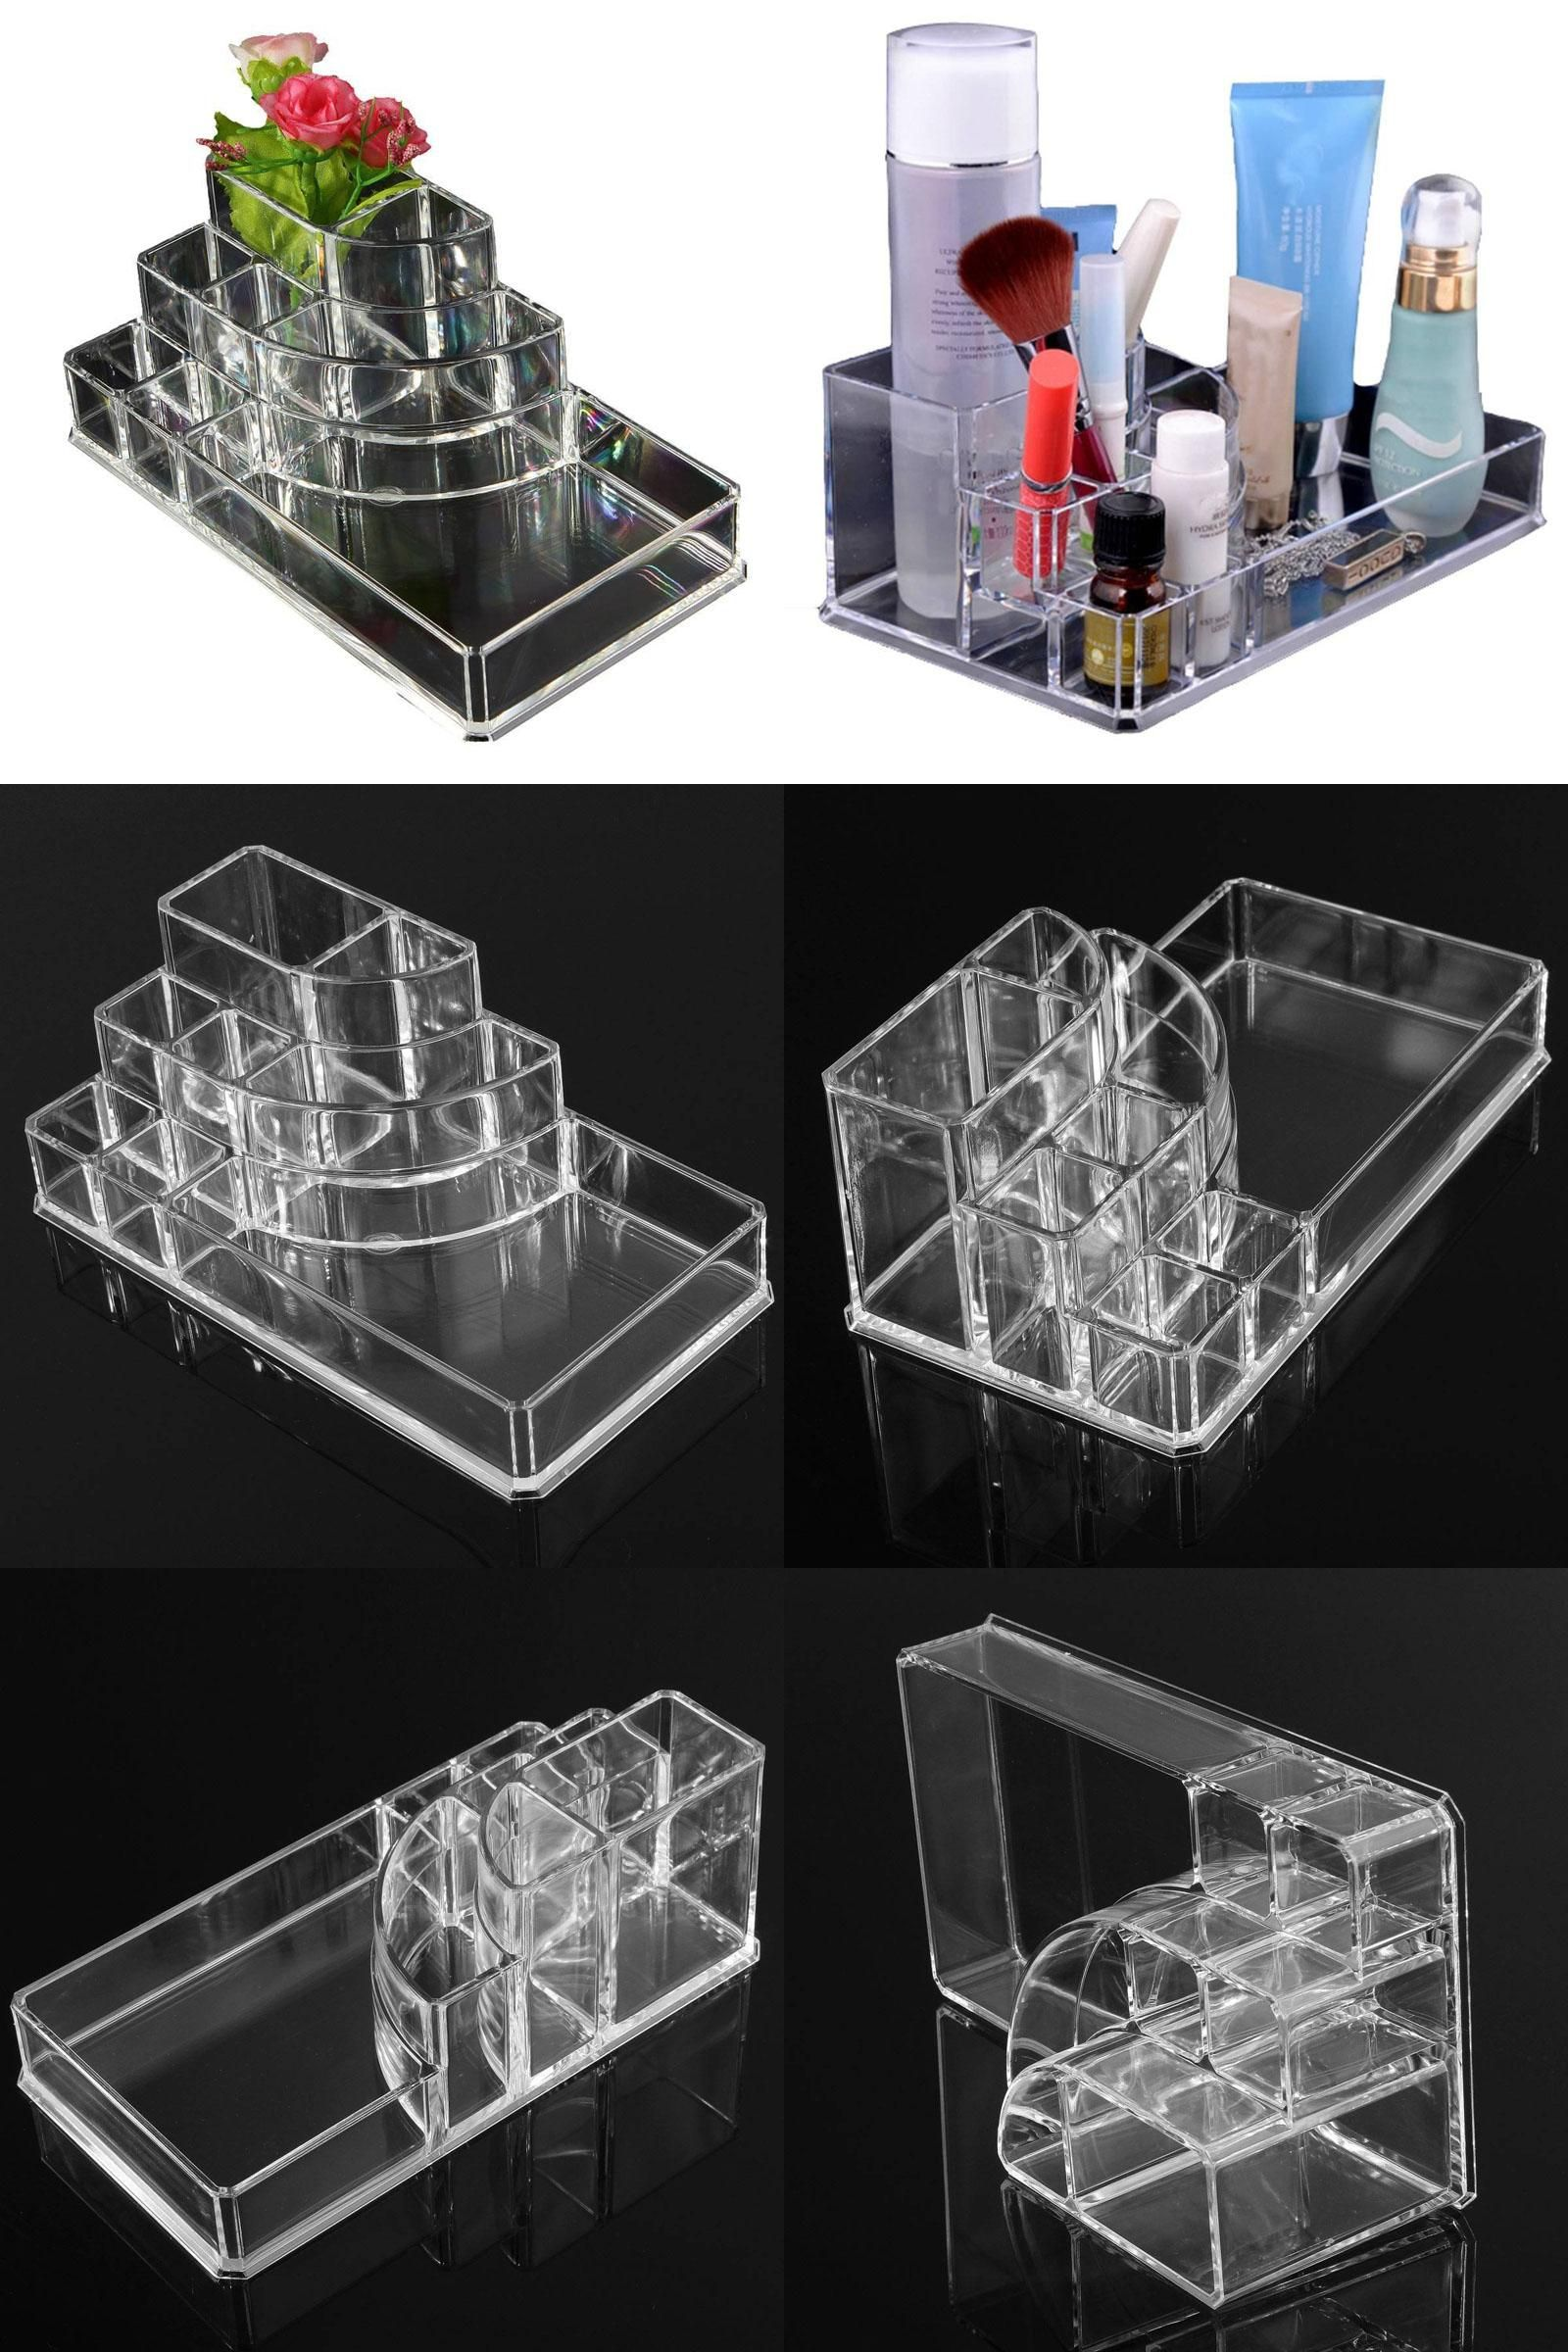 [Visit To Buy] Acrylic Cosmetic Organizer Lipstick Holder Display Stand  Clear Makeup Case Makeup